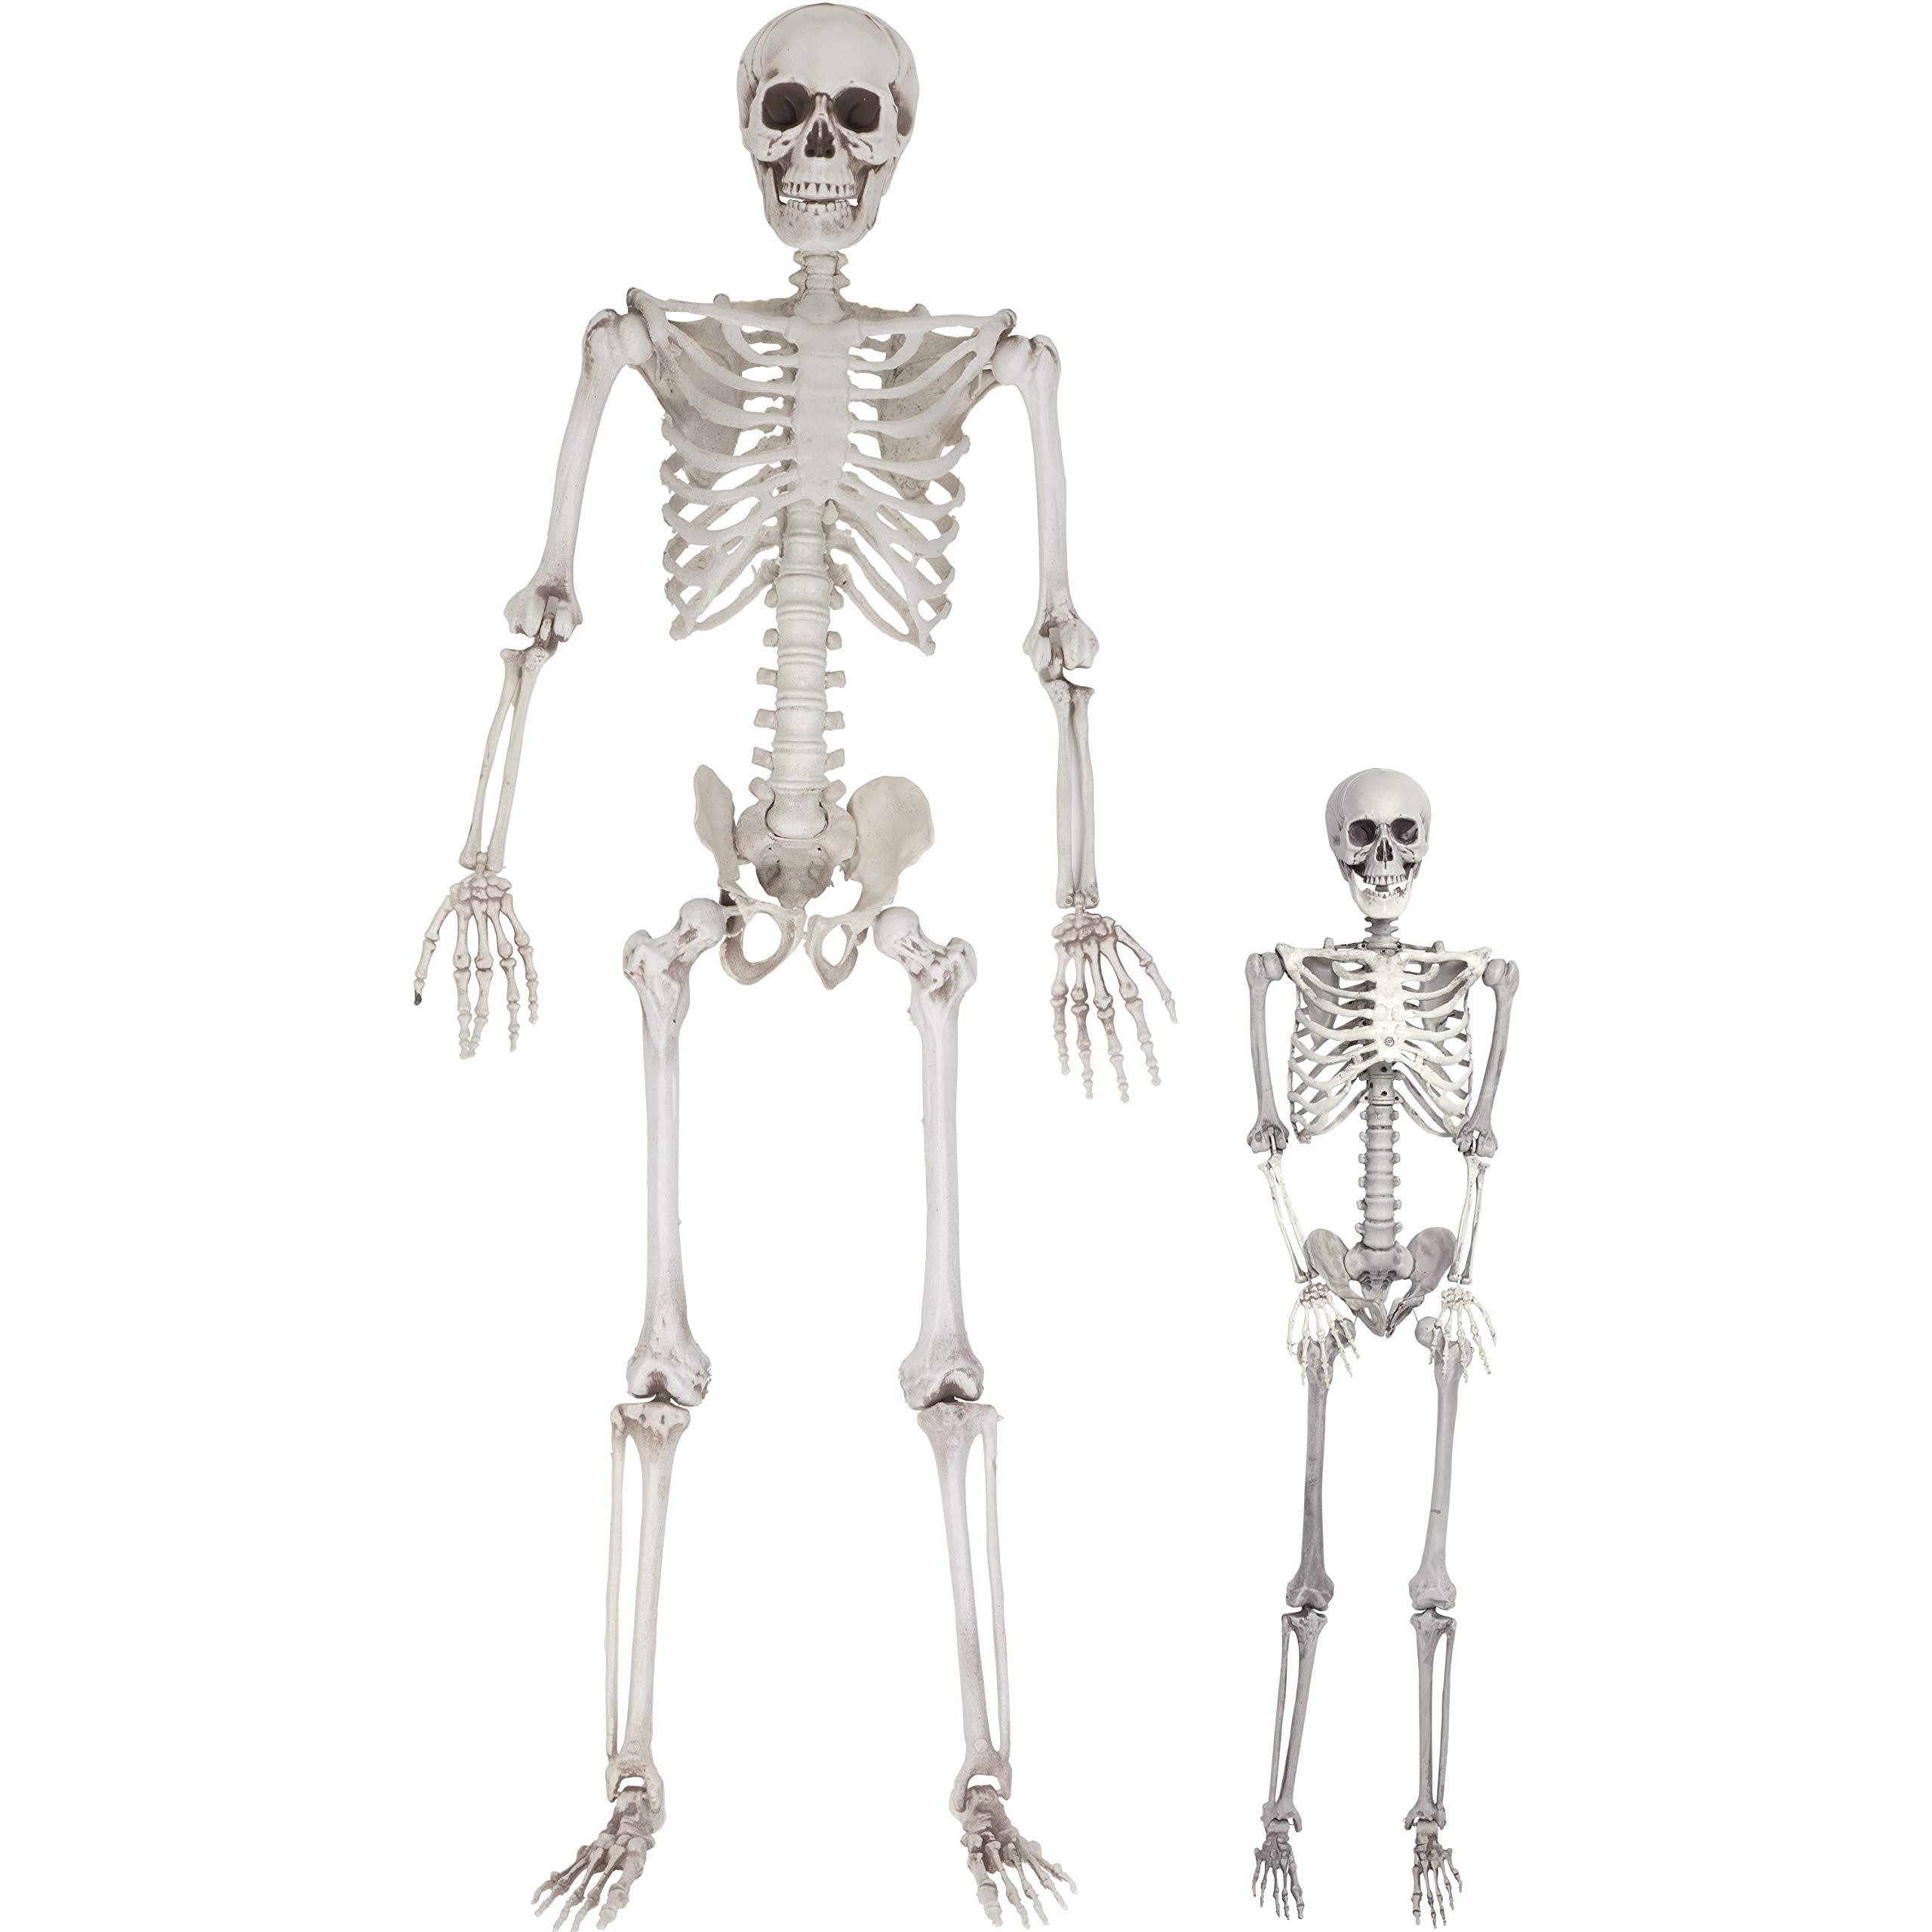 Halloween Life Size Skeleton Value 2 Pack - Adult (5' 4'') and Child (3') Decorations w Bending Joints - Weatherproof Human Bones Body Prop - Perfect for Indoor/Outdoor Use by SCS Direct